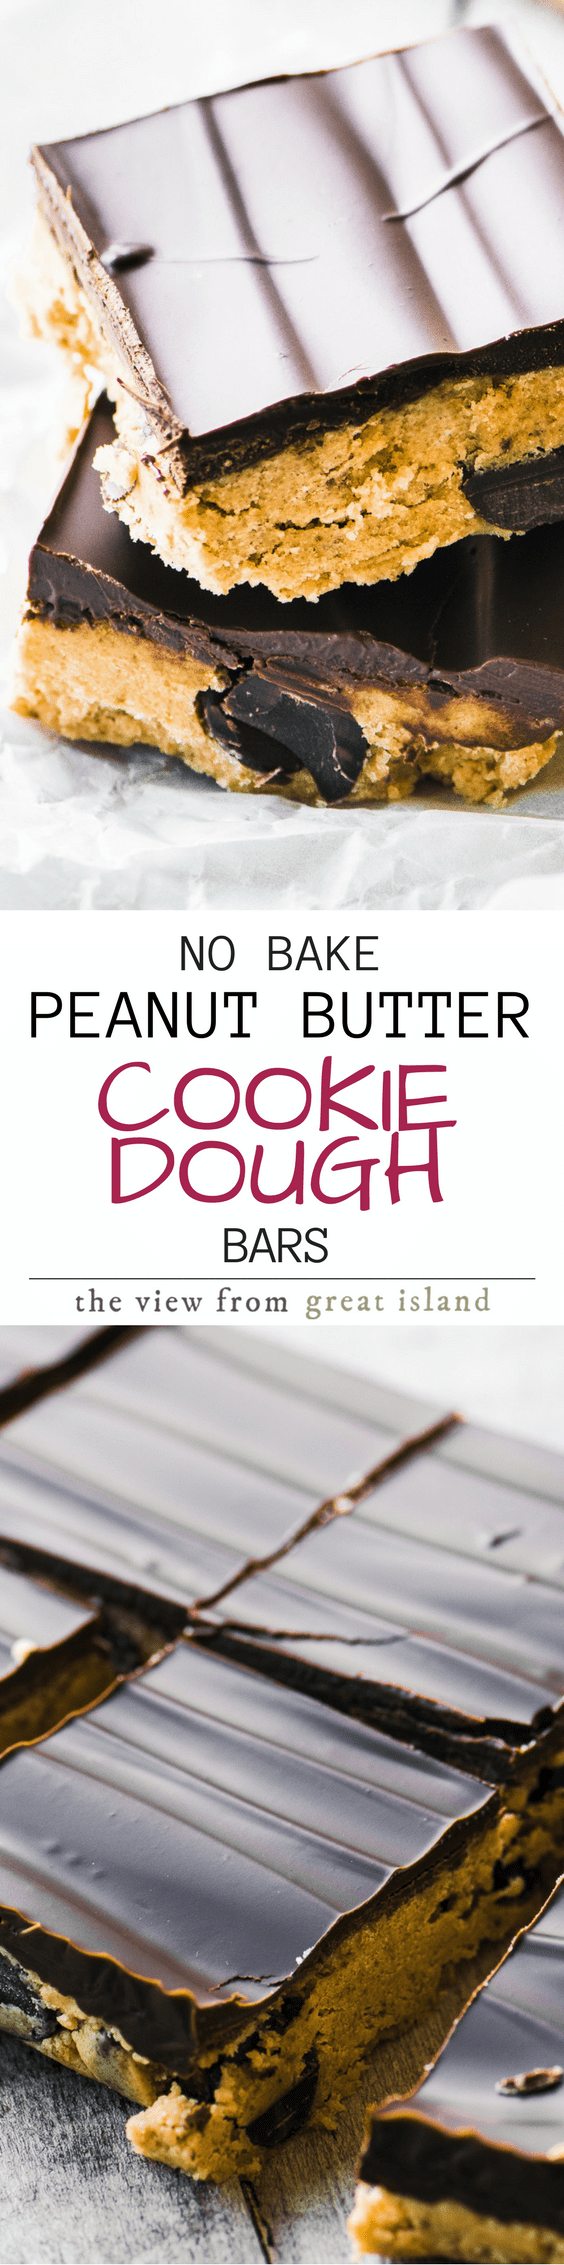 No Bake Peanut Butter Chocolate Chip Cookie Dough Bars ~ these easy bars are a cookie dough lover's dream come true. There are no eggs in the recipe, and the flour is microwaved to kill any potential bacteria. #dessert #cookiedough #chocolatechipcookie #bars #cookiedoughrecipe #rawcookiedough #chocolate #cookies #nobake